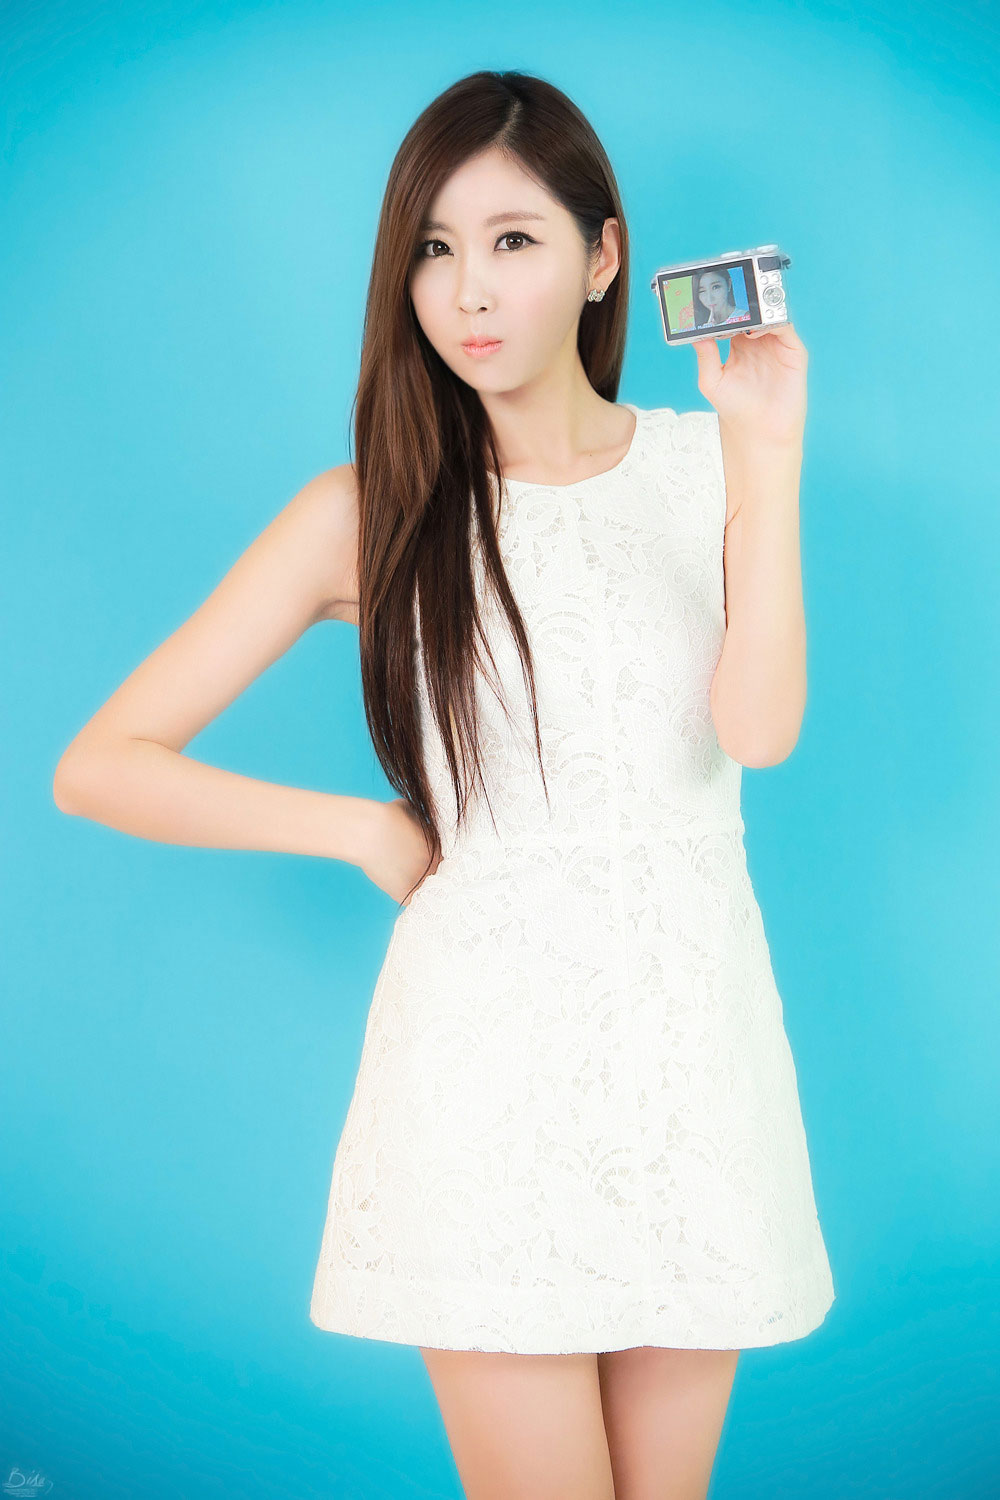 Korean Model Choi Byul I - Collection Pictures